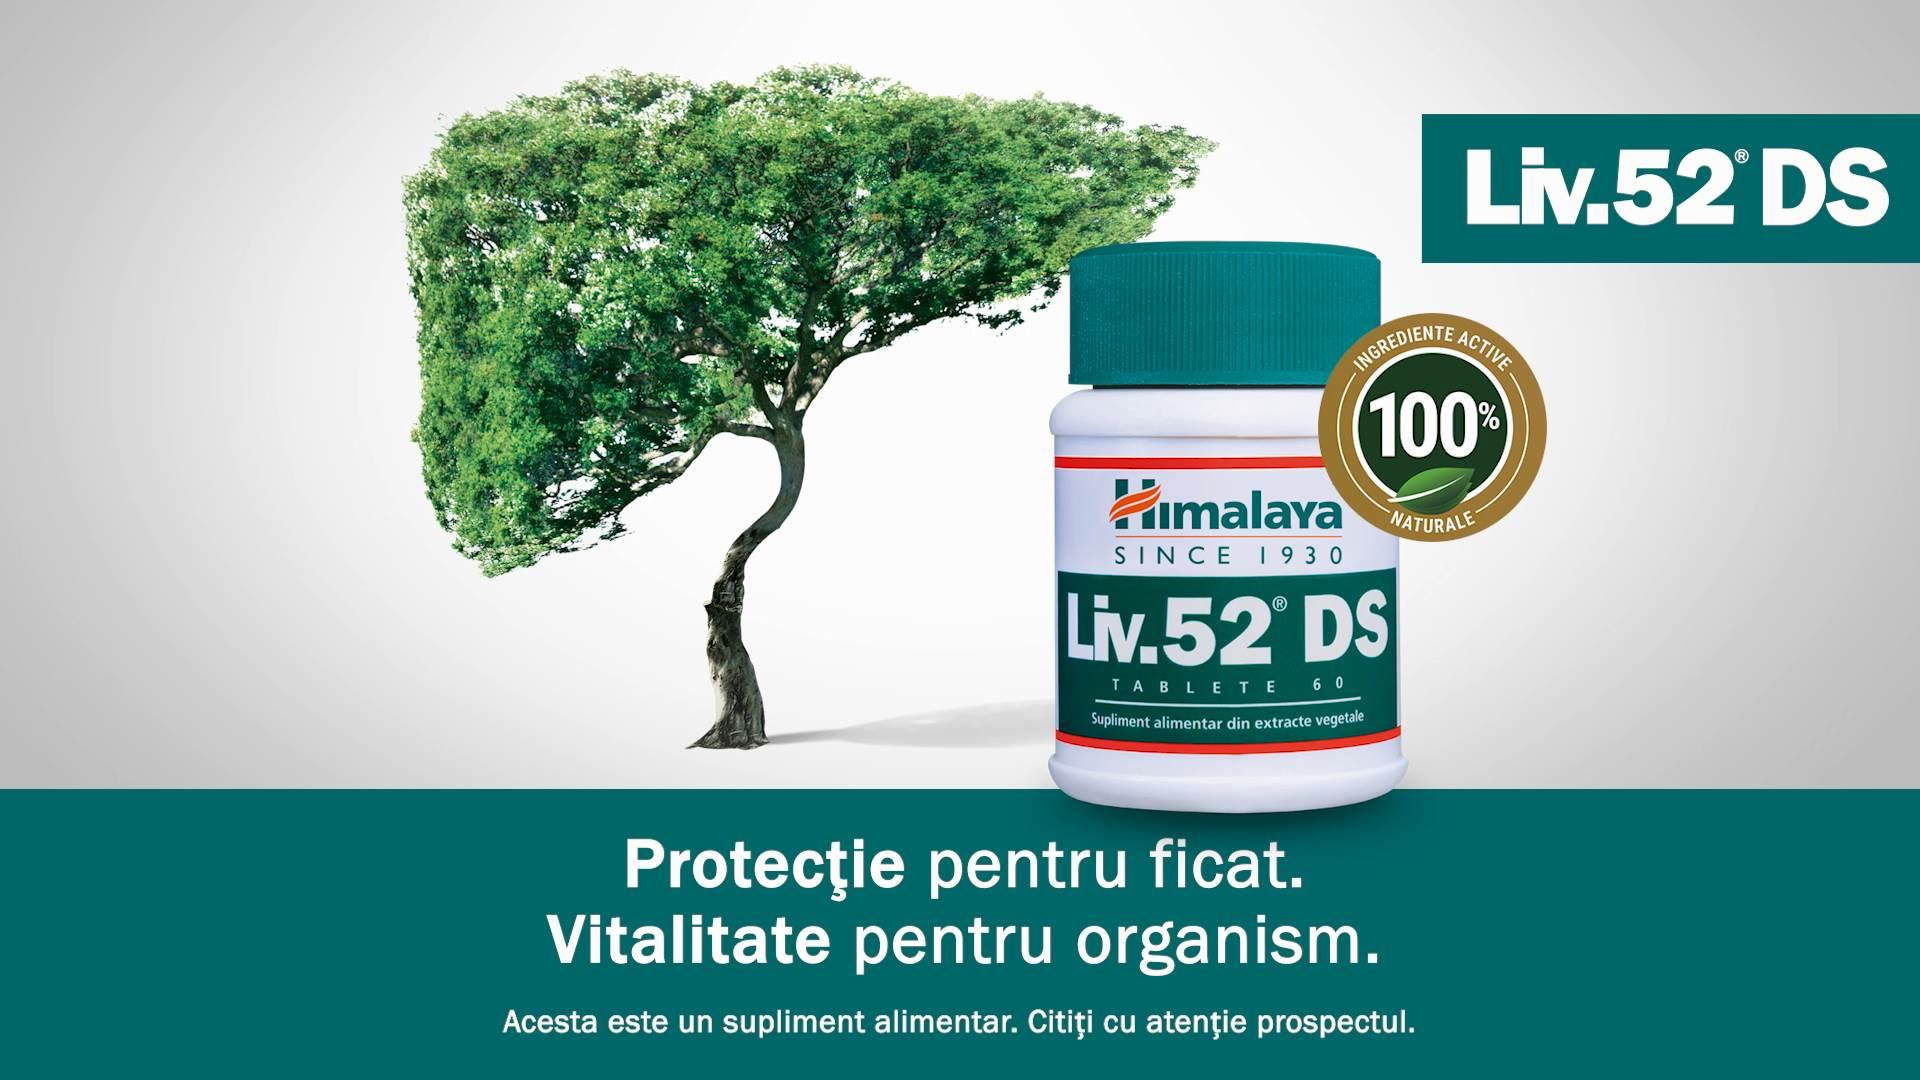 Liv.52 DS is a herbal product for the liver and gallbladder.